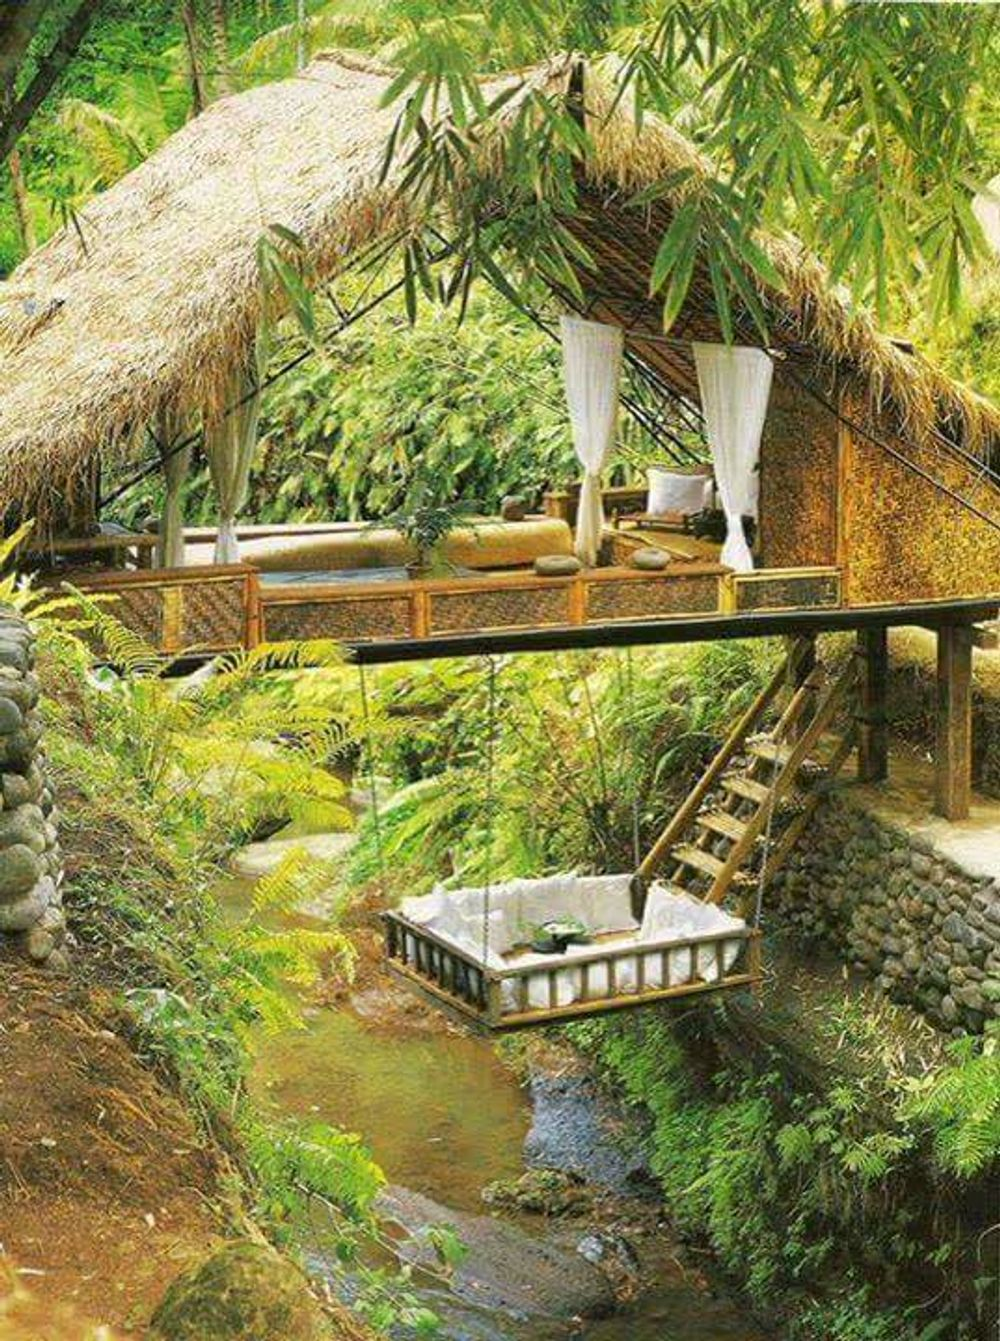 Tree House from around the world .